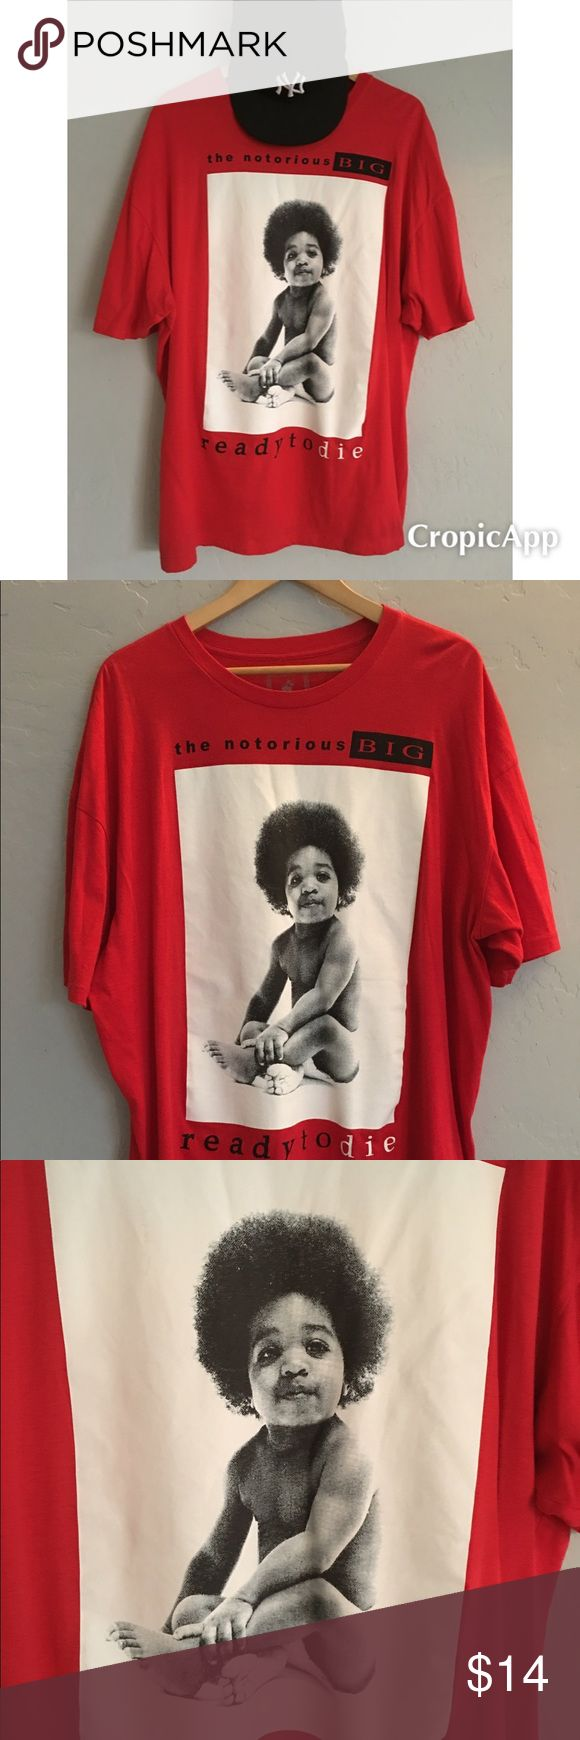 Brooklyn Mint Men's Red And Black T-Shirt Sz S PRELOVED Men's Brooklyn Mint Red Notorious Big tee size 2XL.   Great trendy Men's top.  Lots of life left. Good condition well worn shirt. No signs of damage or wear and tear. brooklyn mint Shirts Tees - Short Sleeve